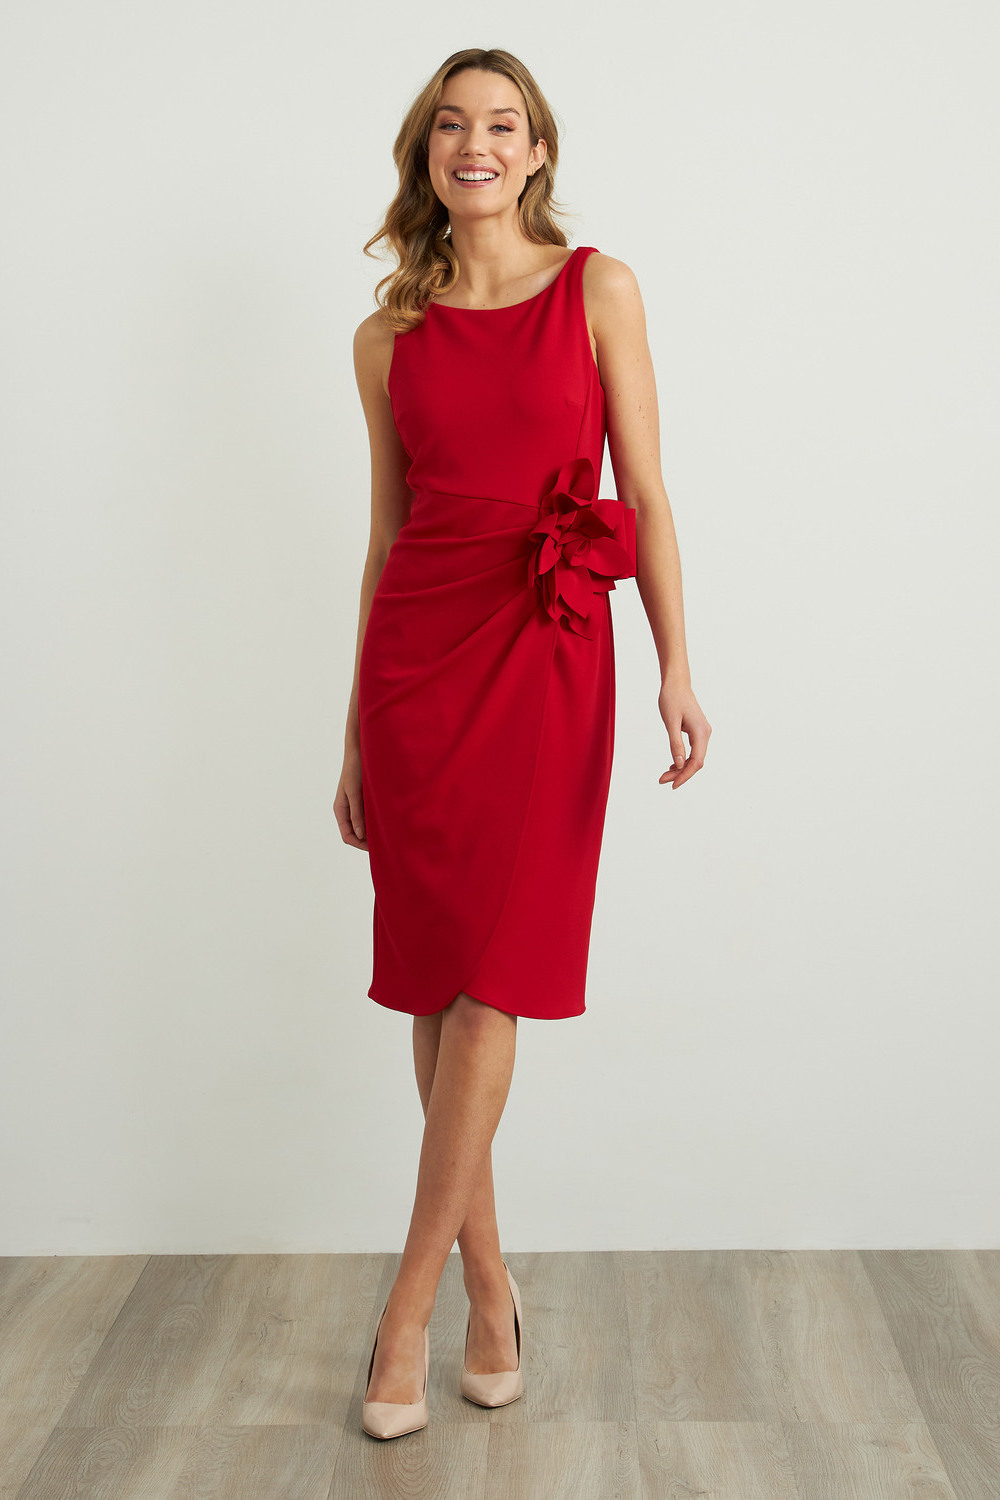 Joseph Ribkoff Robes Rouge A Levres 173 Style 211469